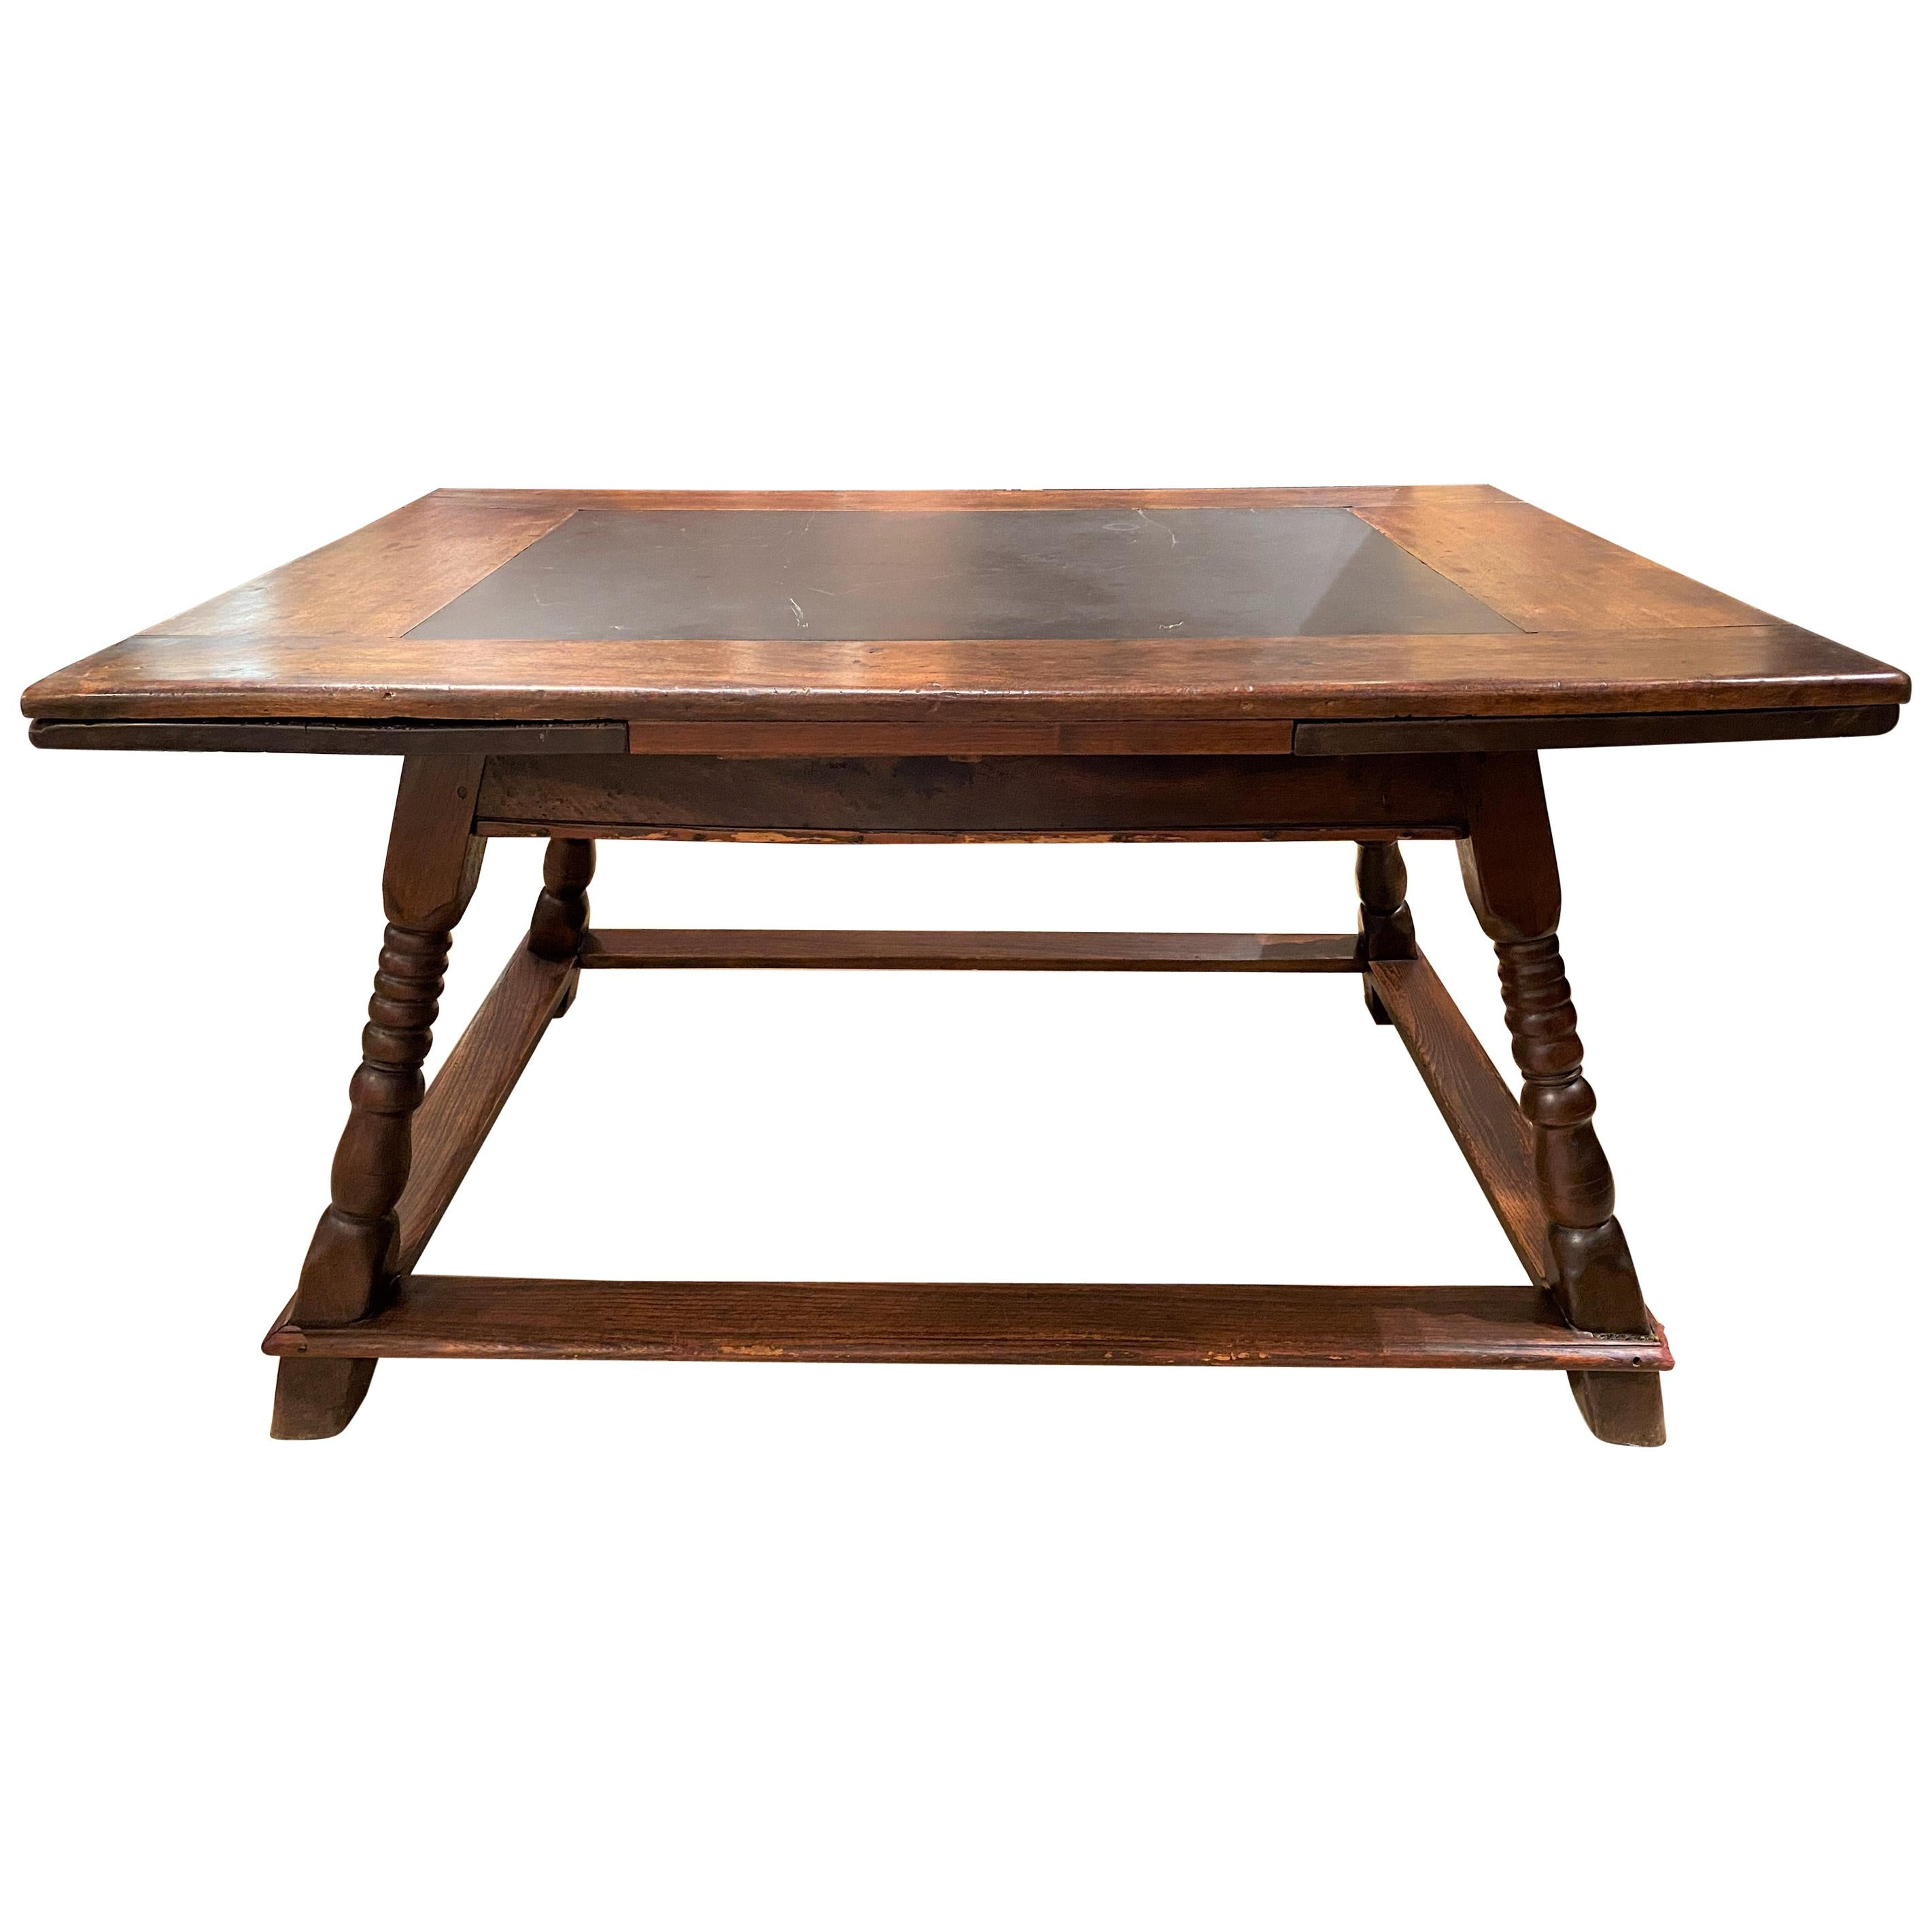 18th-19th Century German or Swiss Walnut Draw Leaf Dining Table with Slate Top